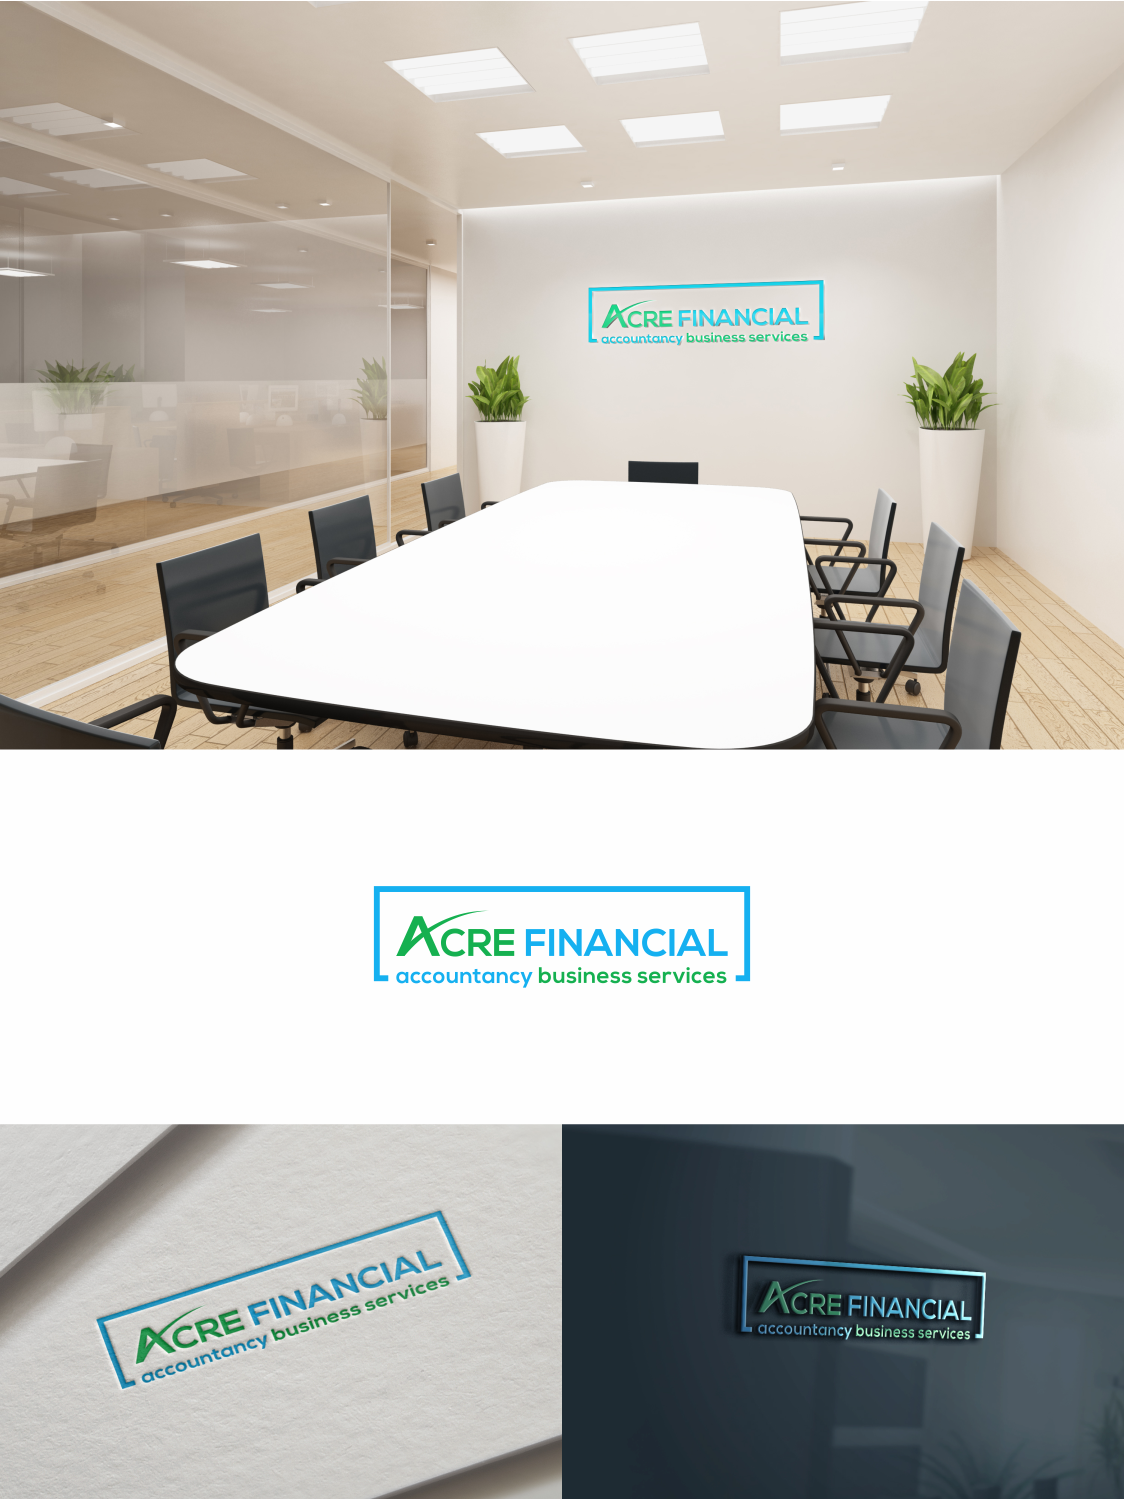 Elegant Playful Finance And Accounting Logo Design For Acre Financial Accountancy Business Services By Optimistic Studio Design 17902843